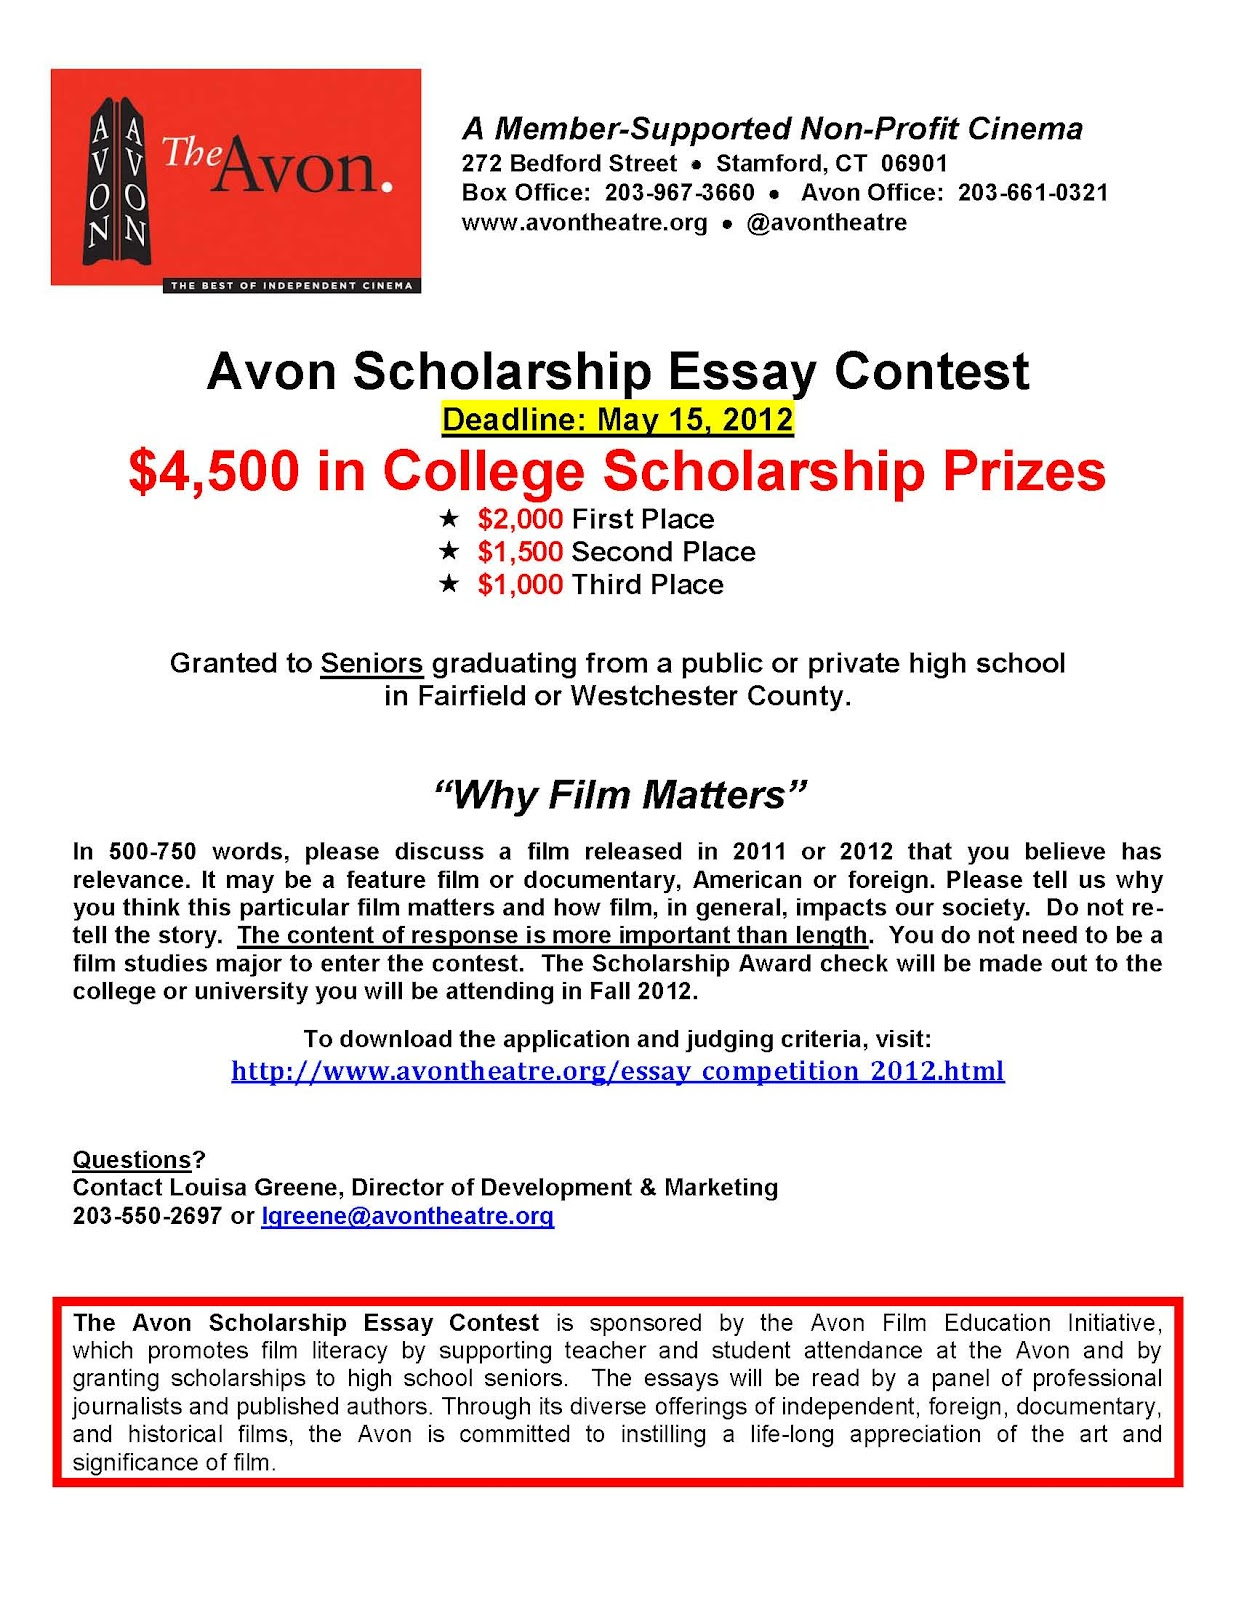 016 Avonscholarshipessaycontest2012flyer Essay Example Shocking Scholarships 2018 Canada 2019 No For High School Juniors Full